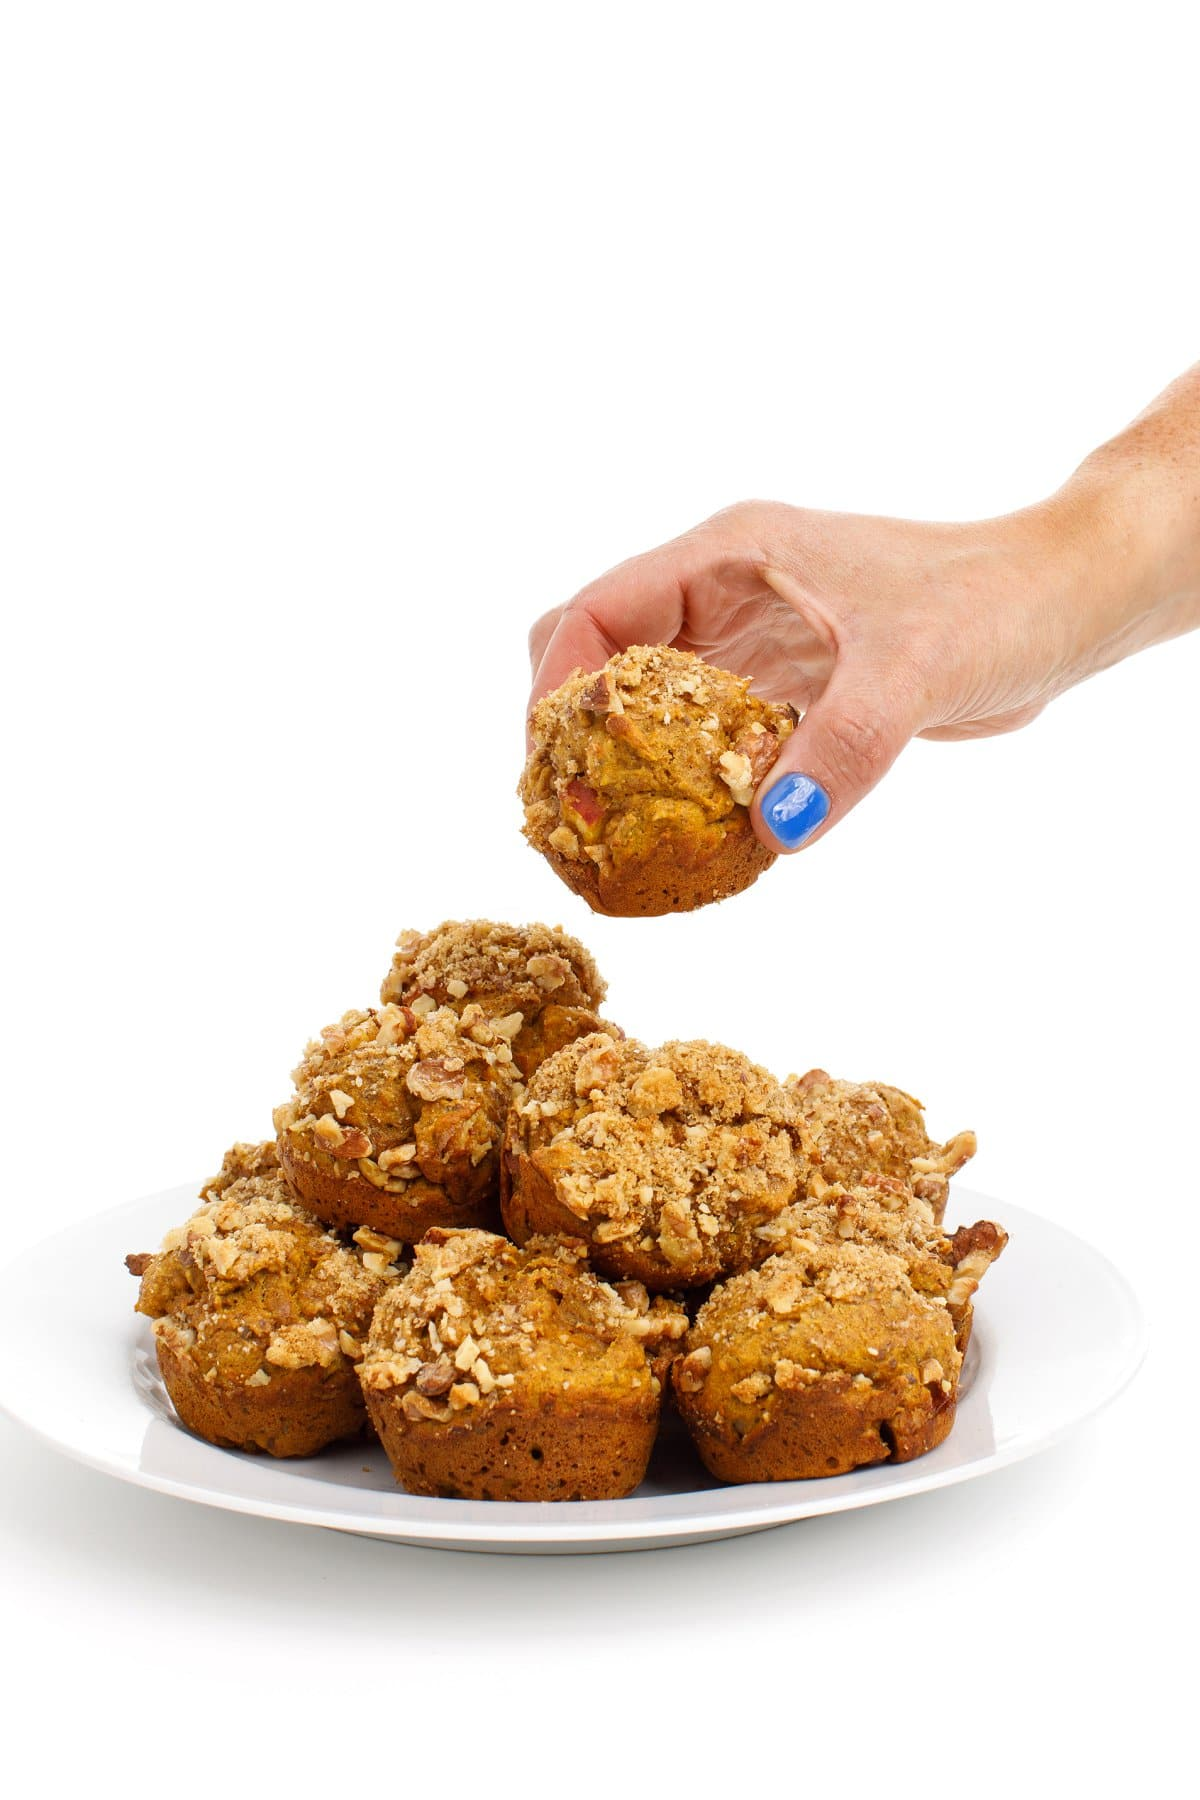 A hand grabbing a pumpkin applesauce muffin from a stack with a white background